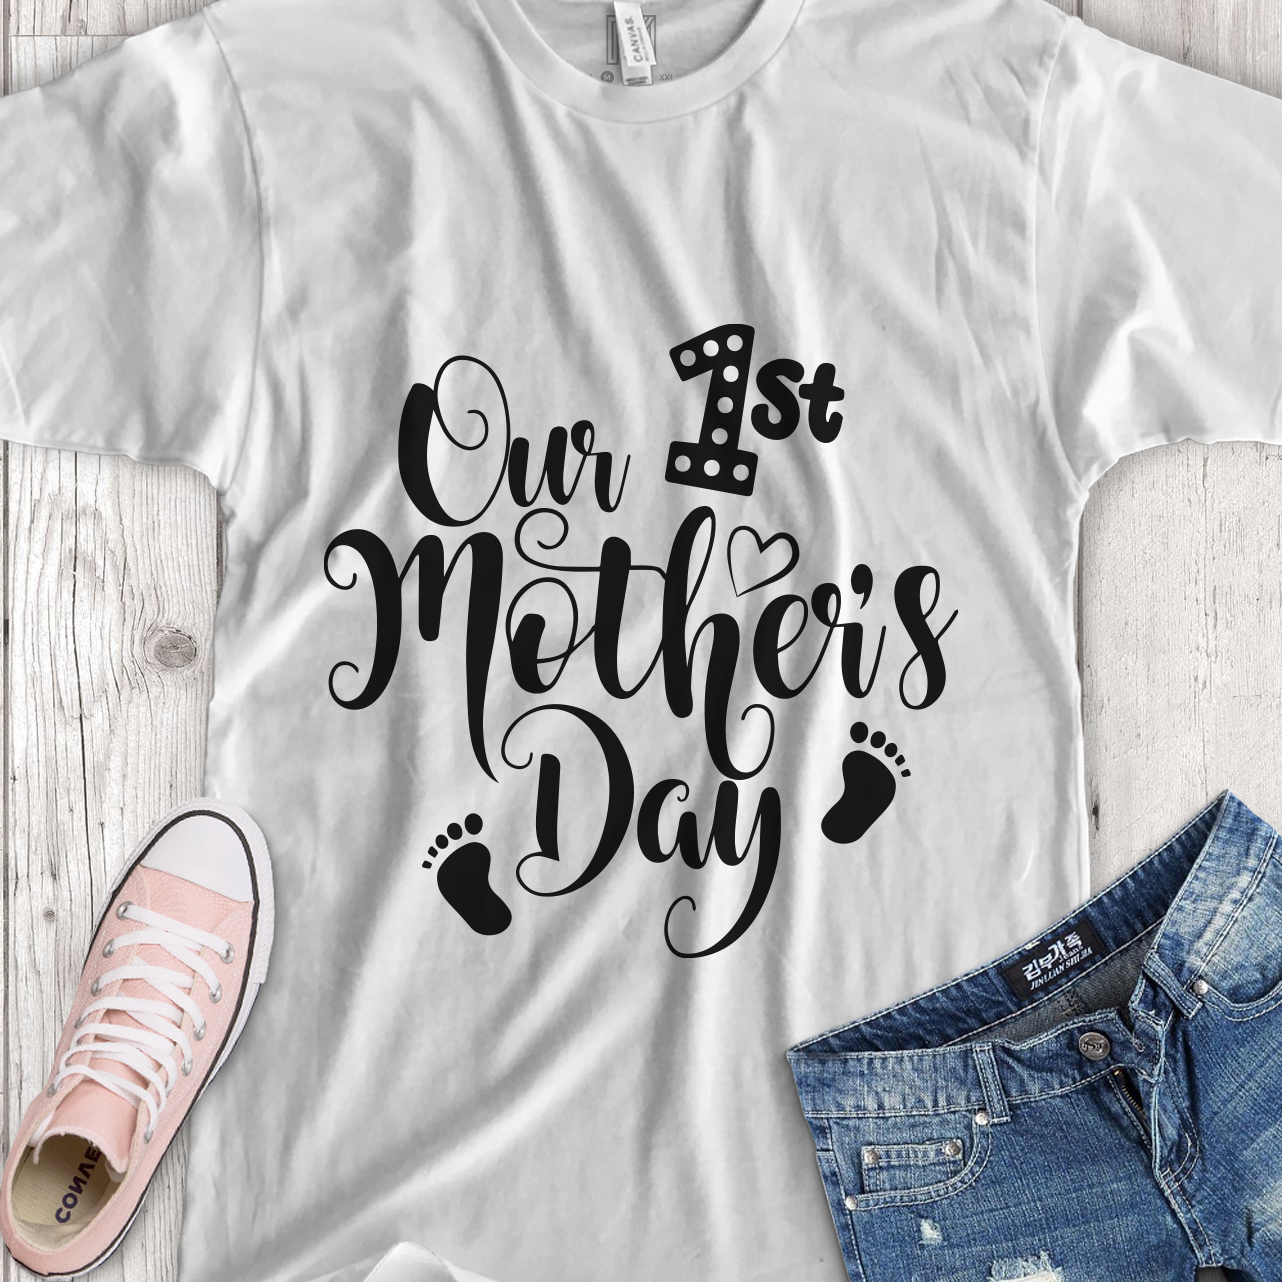 Our 1st Mother's Day together T-Shirt